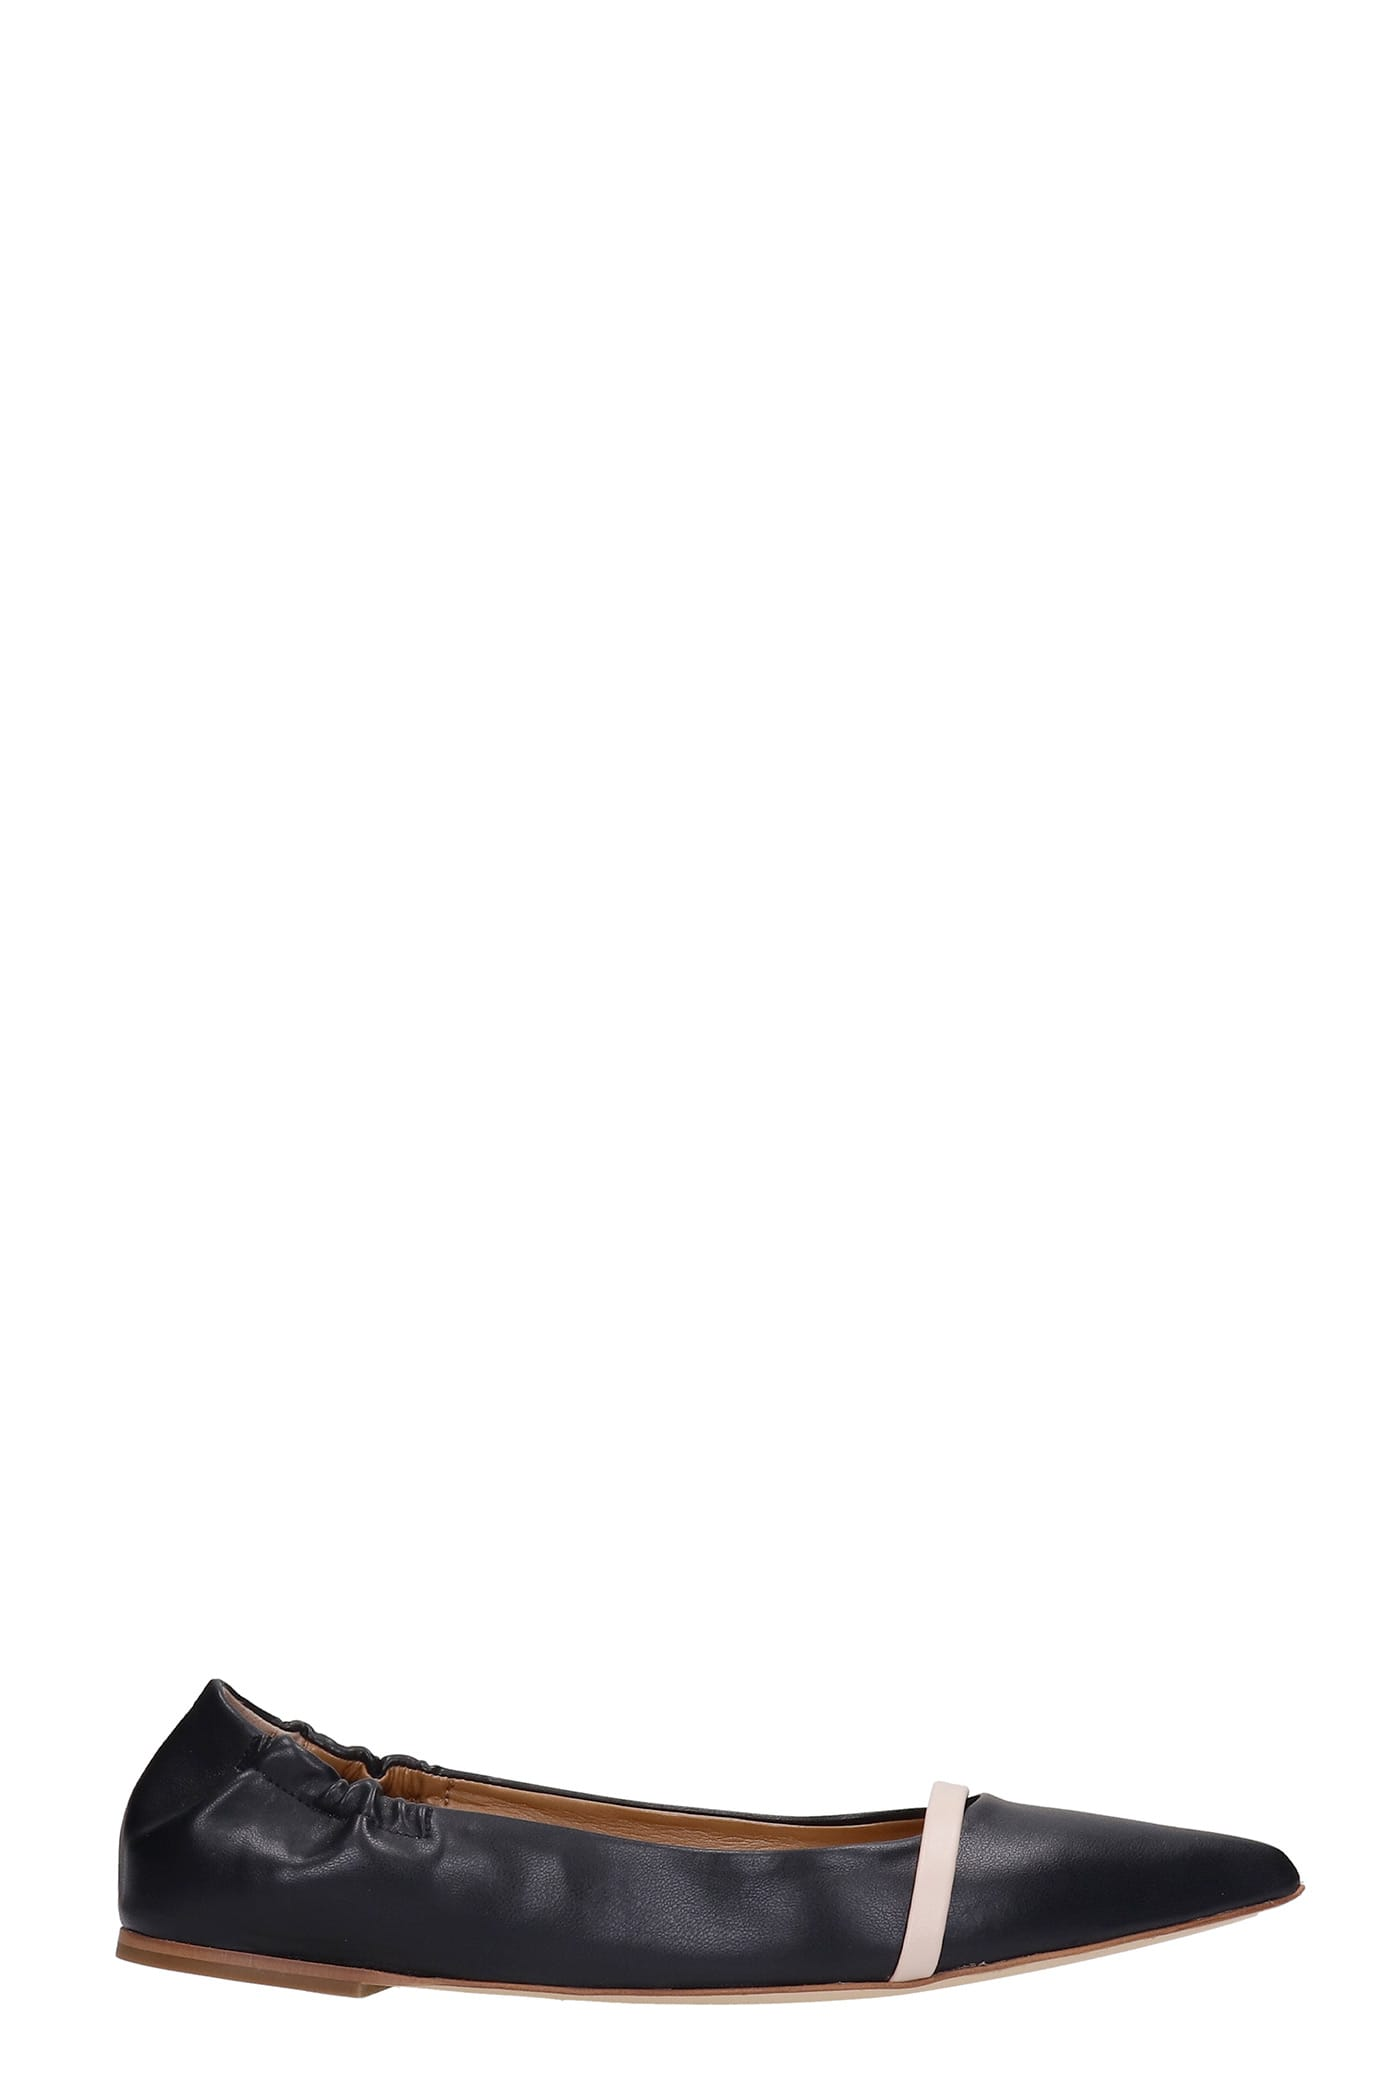 Malone Souliers RAYA BALLET FLATS IN BLACK LEATHER